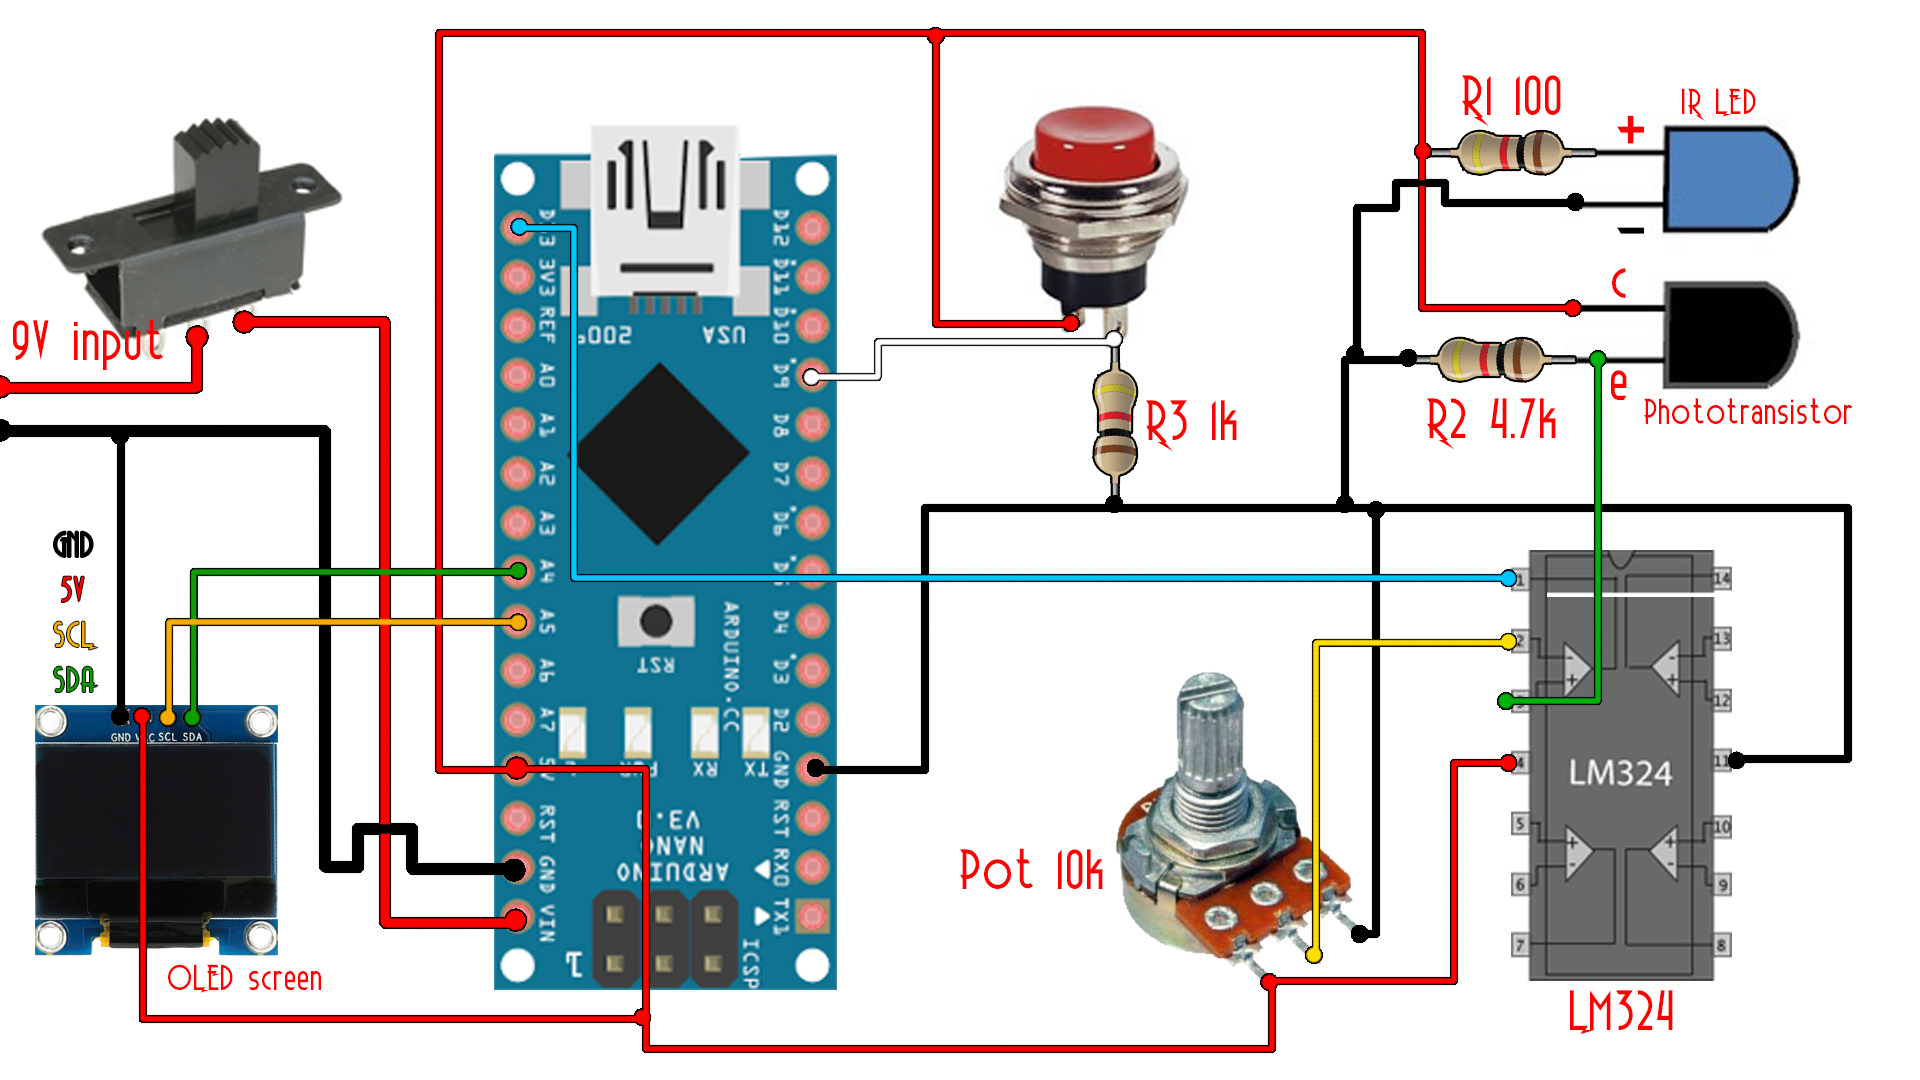 Led Tachometer Schematic Trusted Wiring Diagrams Circuit Diagram Using Lm2907 Lm2917 Frequency To Voltage Arduino Rpm Ir Sensor Meter 3d Printed 76 Corvette For